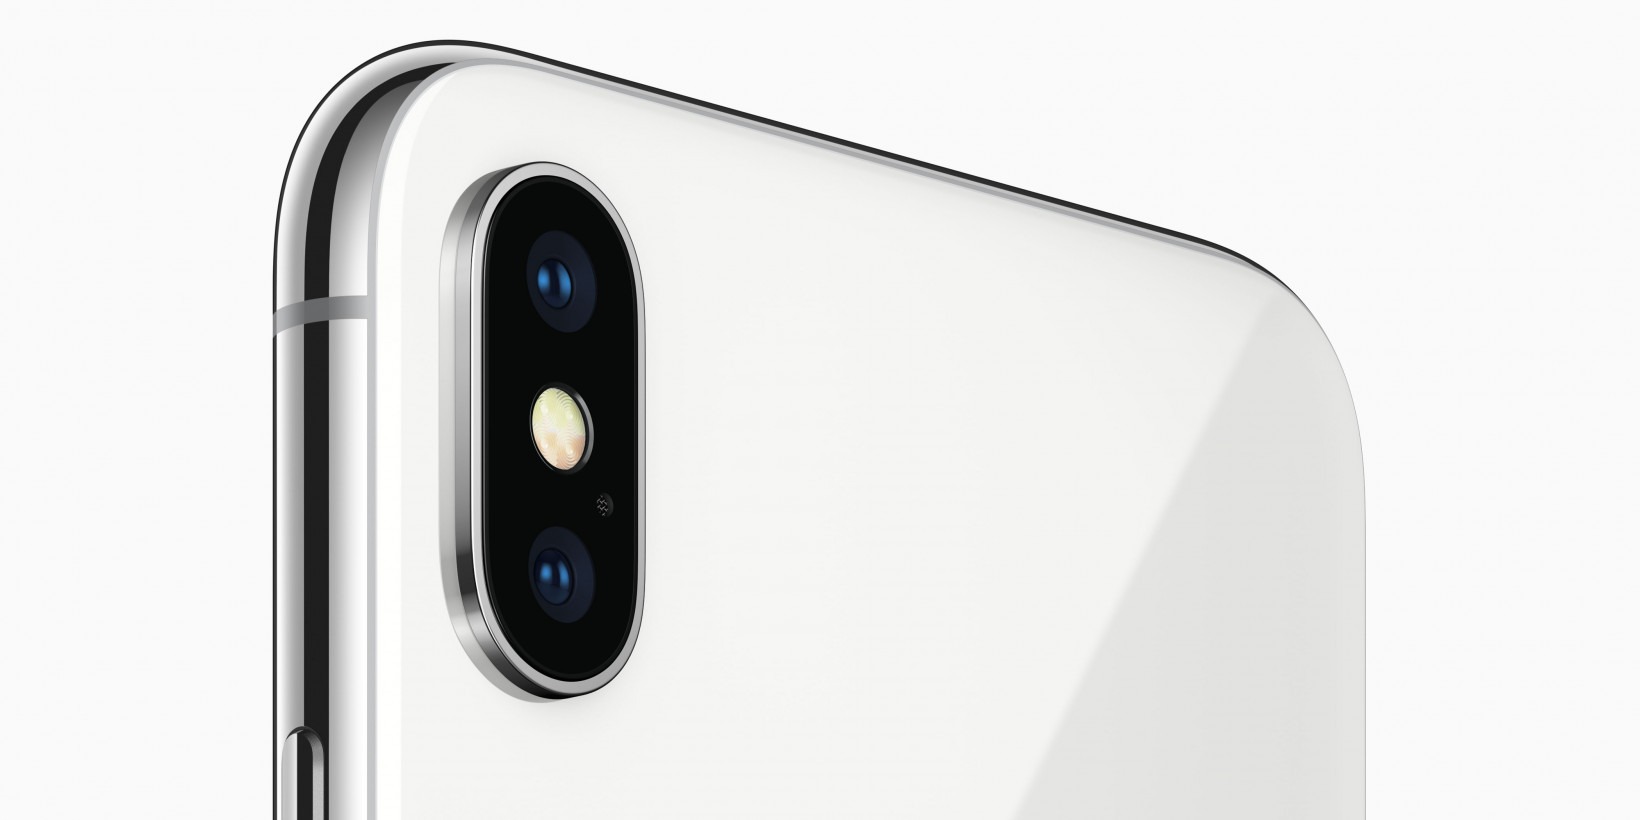 Apple's latest acquisition could enable better low-light photos on iPhones